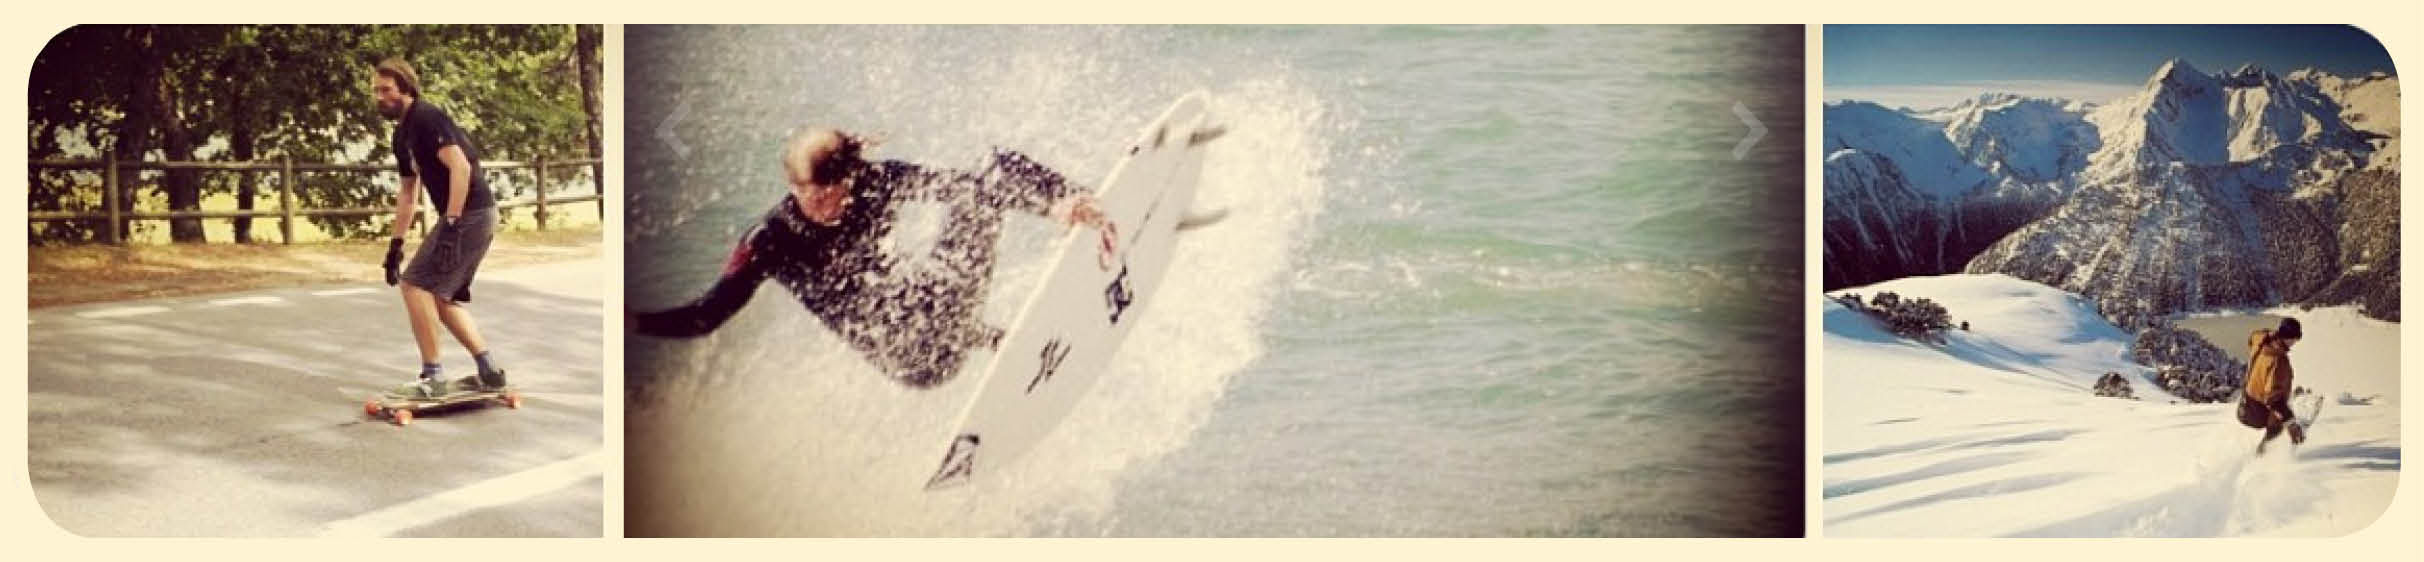 boardingmania hossegor, surf trip hossegor, surf and ski trip, surf and snow trip in one,